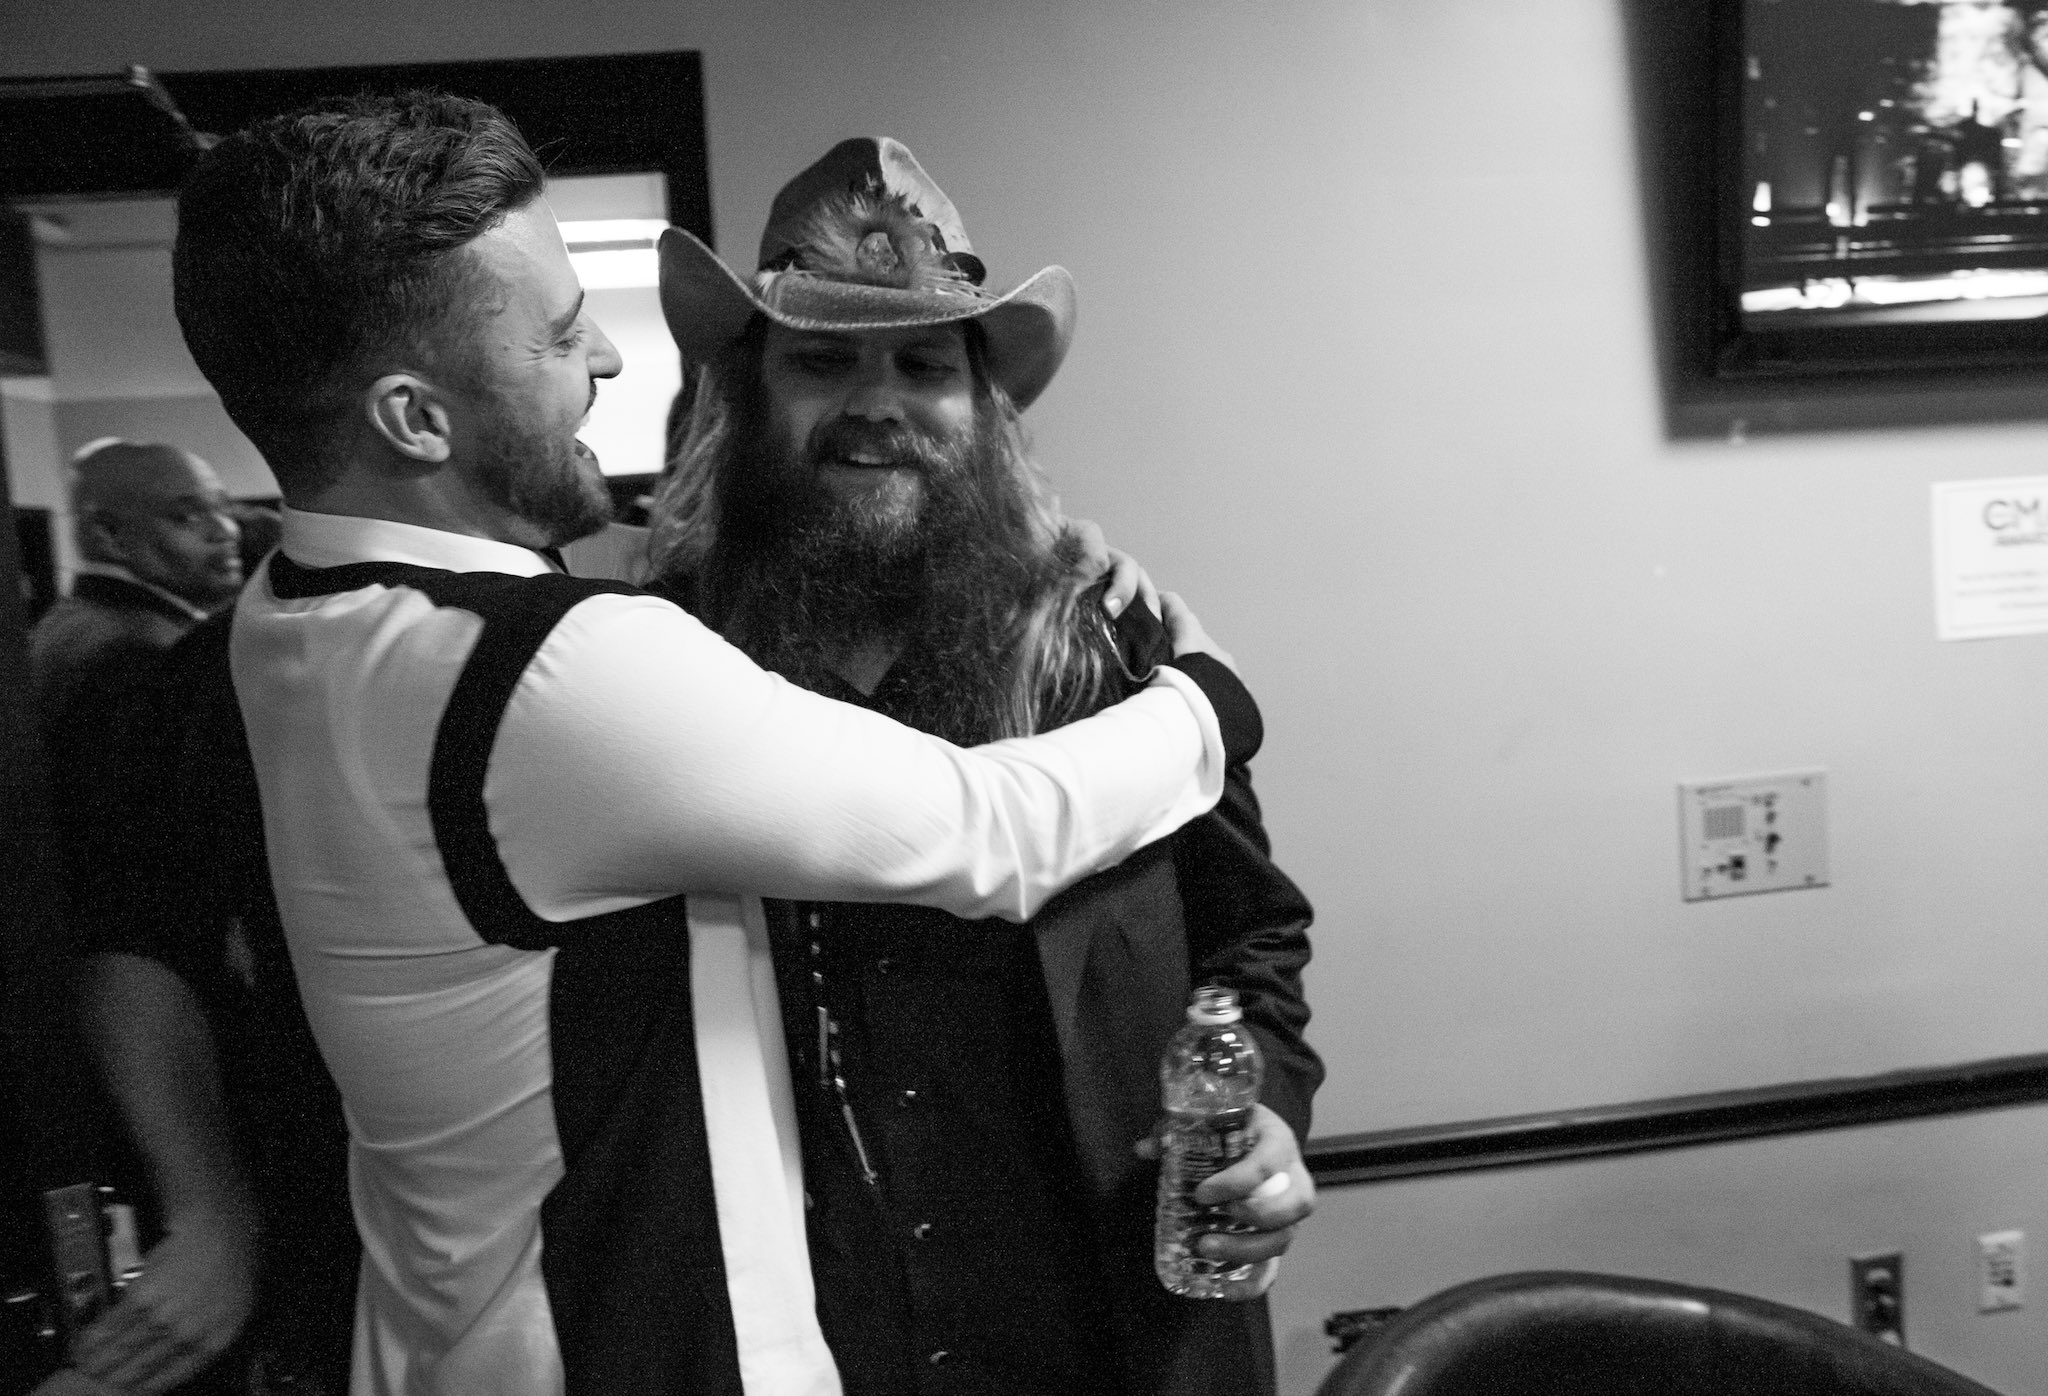 #TBT to the CMAs with @ChrisStapleton who nailed it again with From A Room: Volume 1 #twodudeshugging https://t.co/4UQewsWSeb